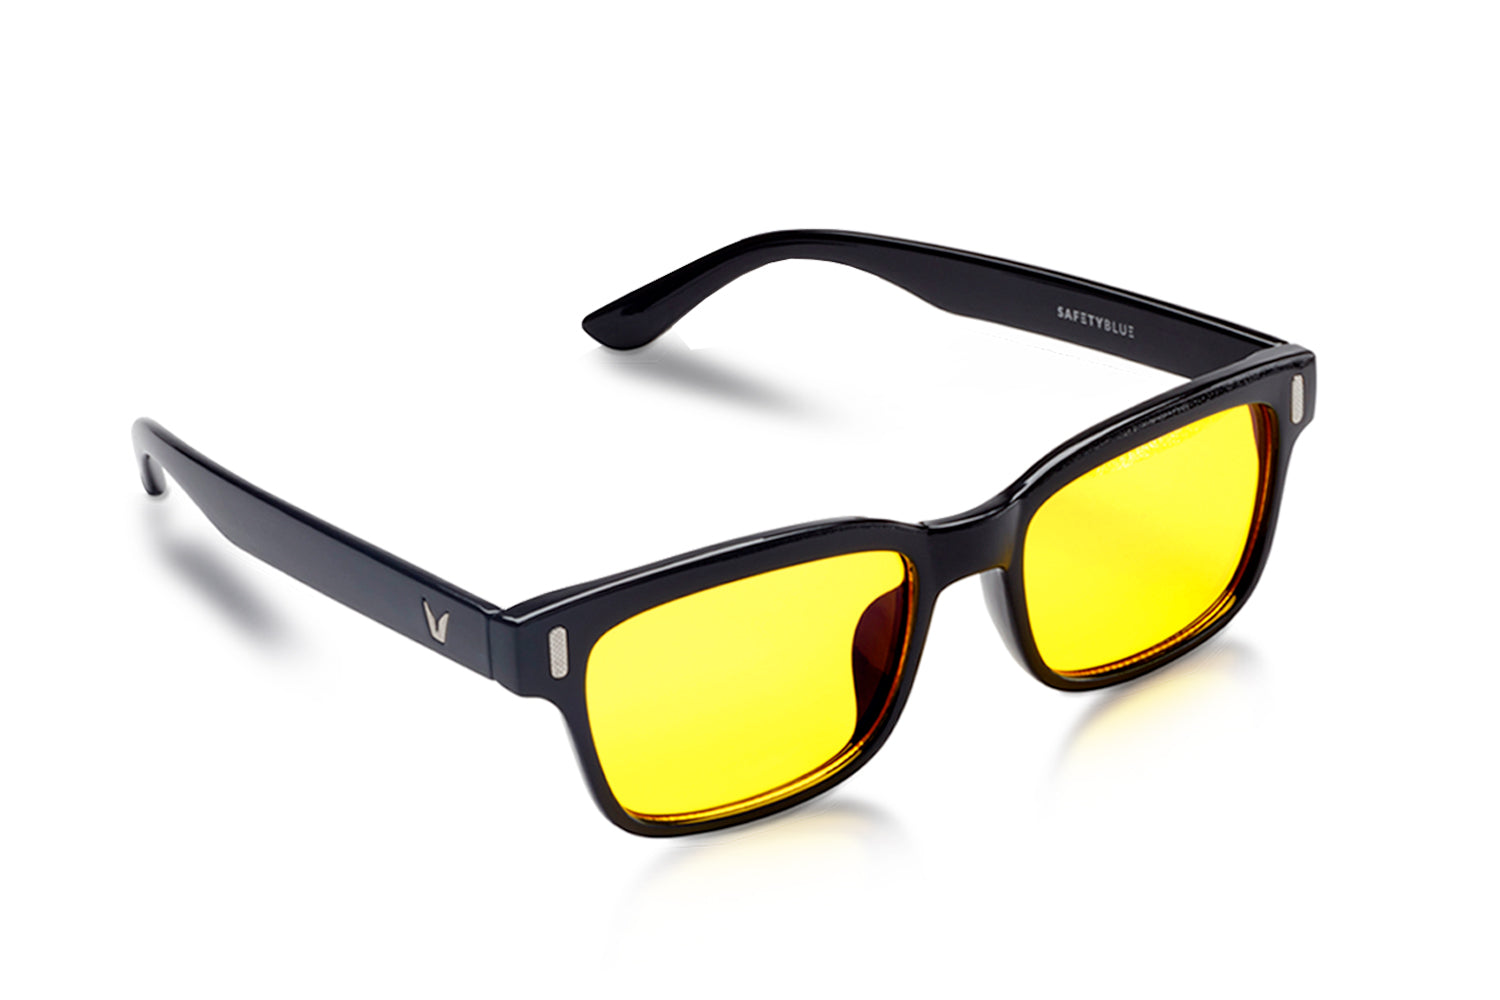 SCREEN SAVIOR Retro Yellow Computer Glasses (Unisex)